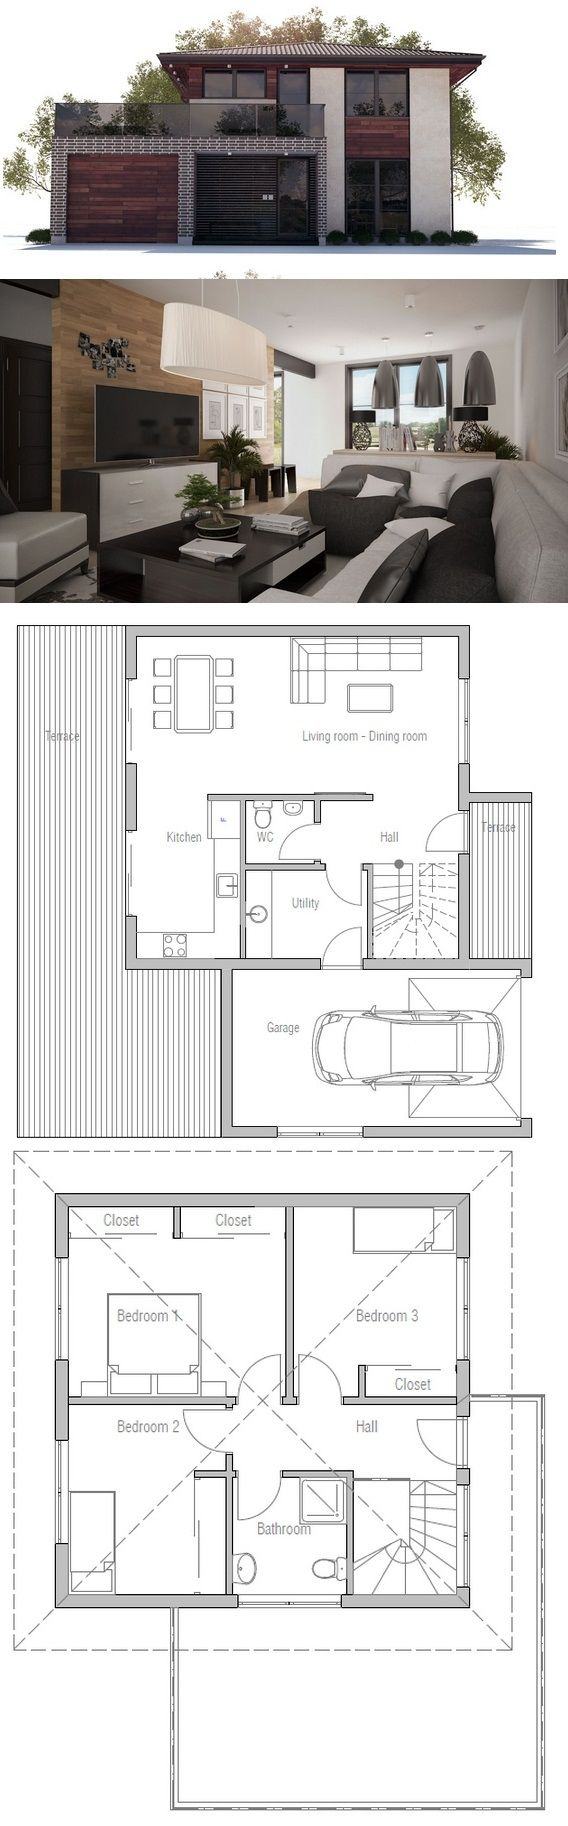 House Plan from ConceptHome.com LOVE me some modern architecture